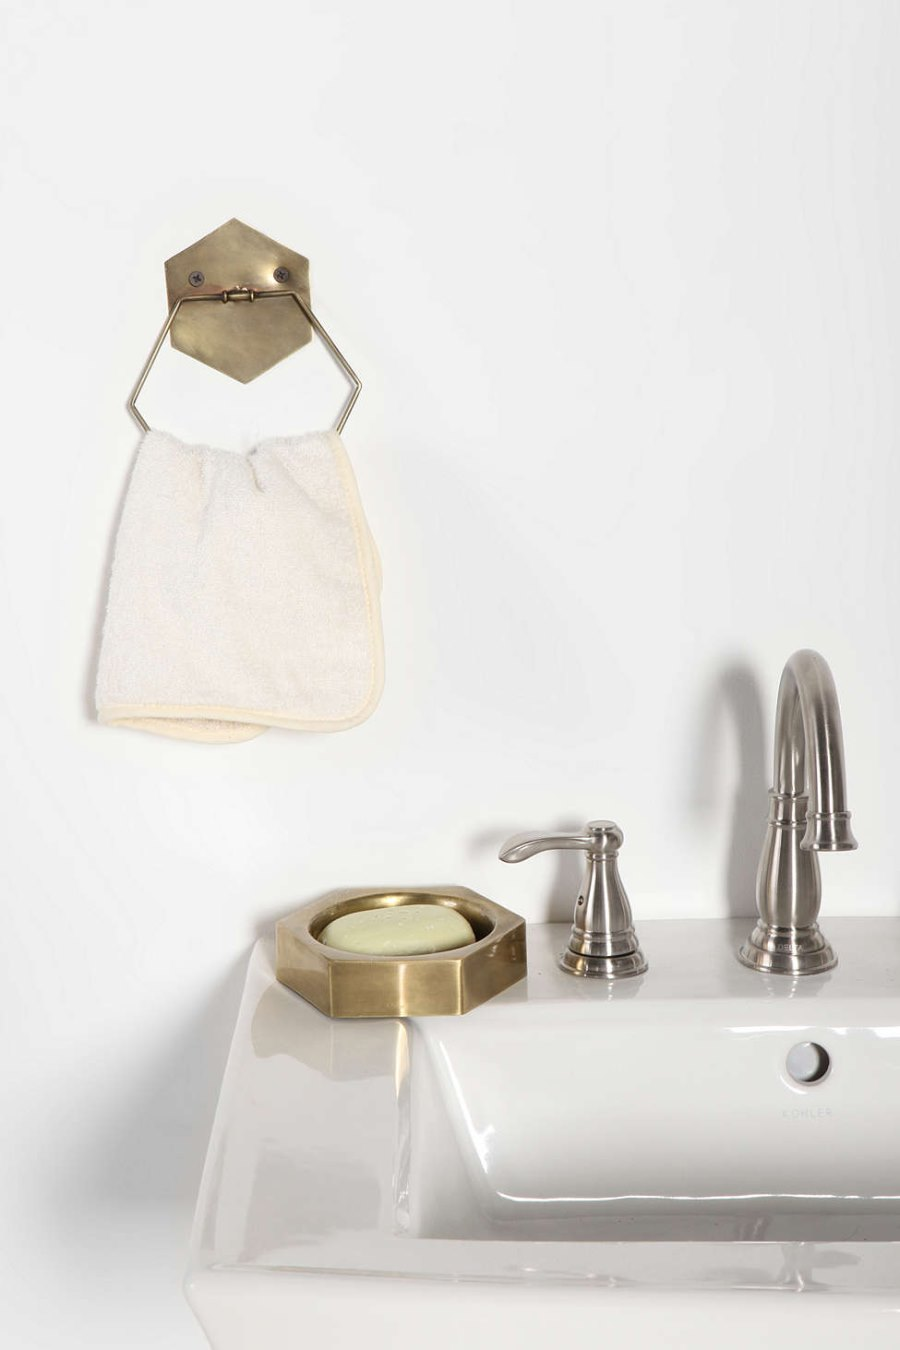 Hexagonal bathroom finds from Urban Outfitters